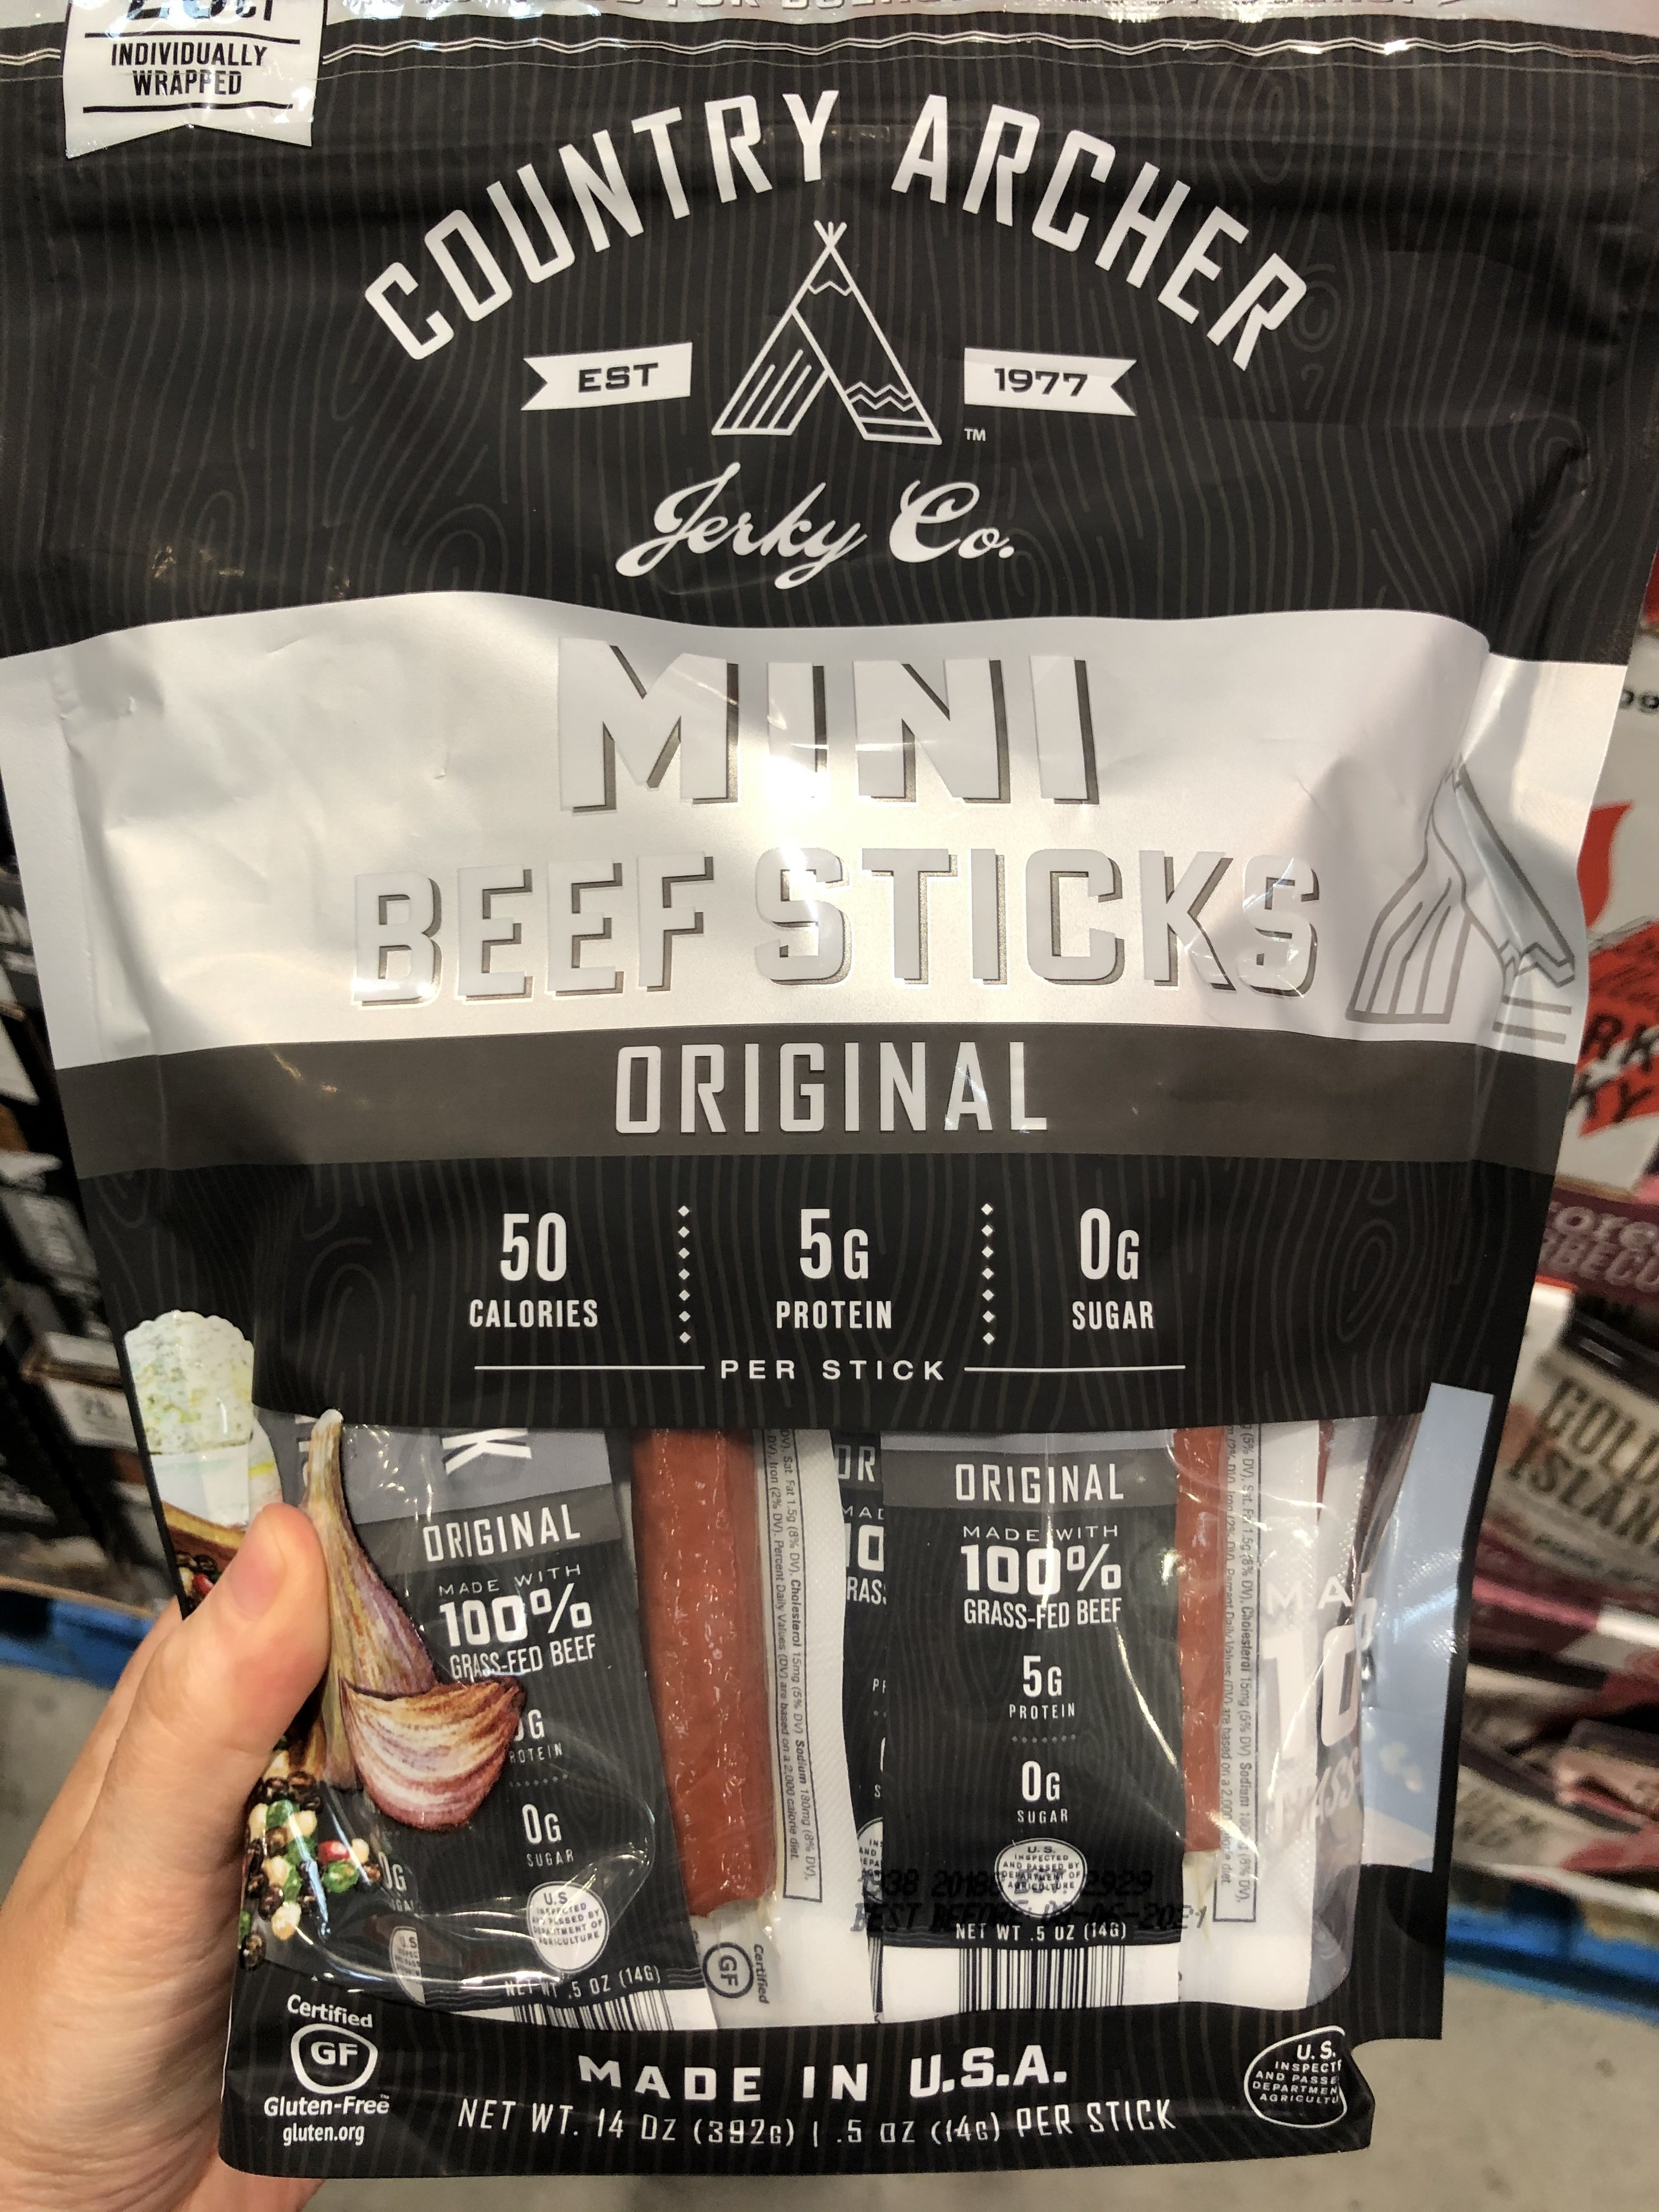 A bag of Country Archer beef sticks